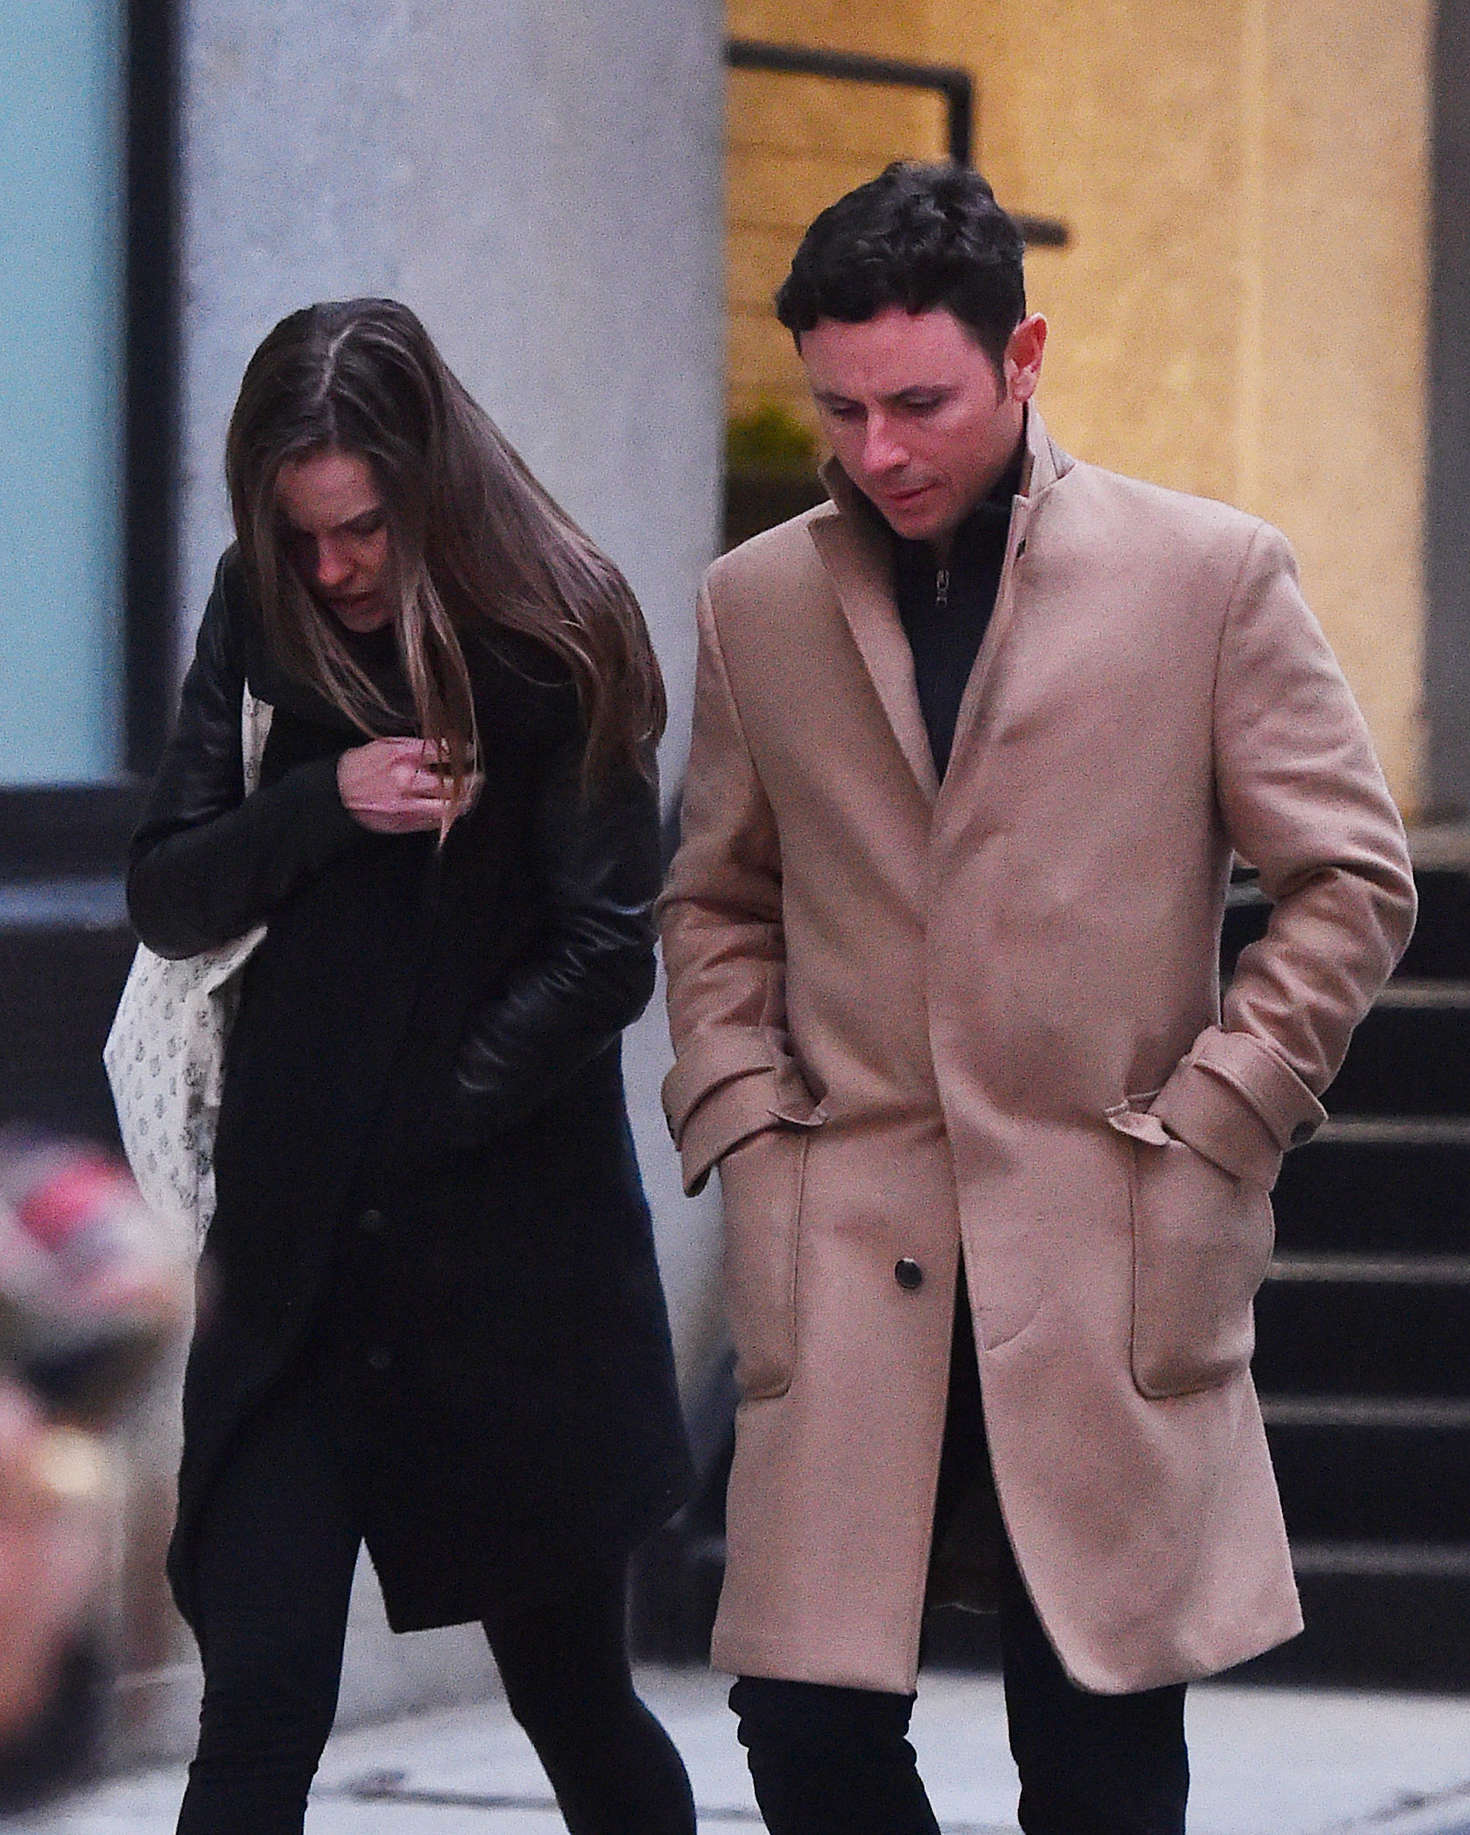 Hilary Swank with her fiance out in New York